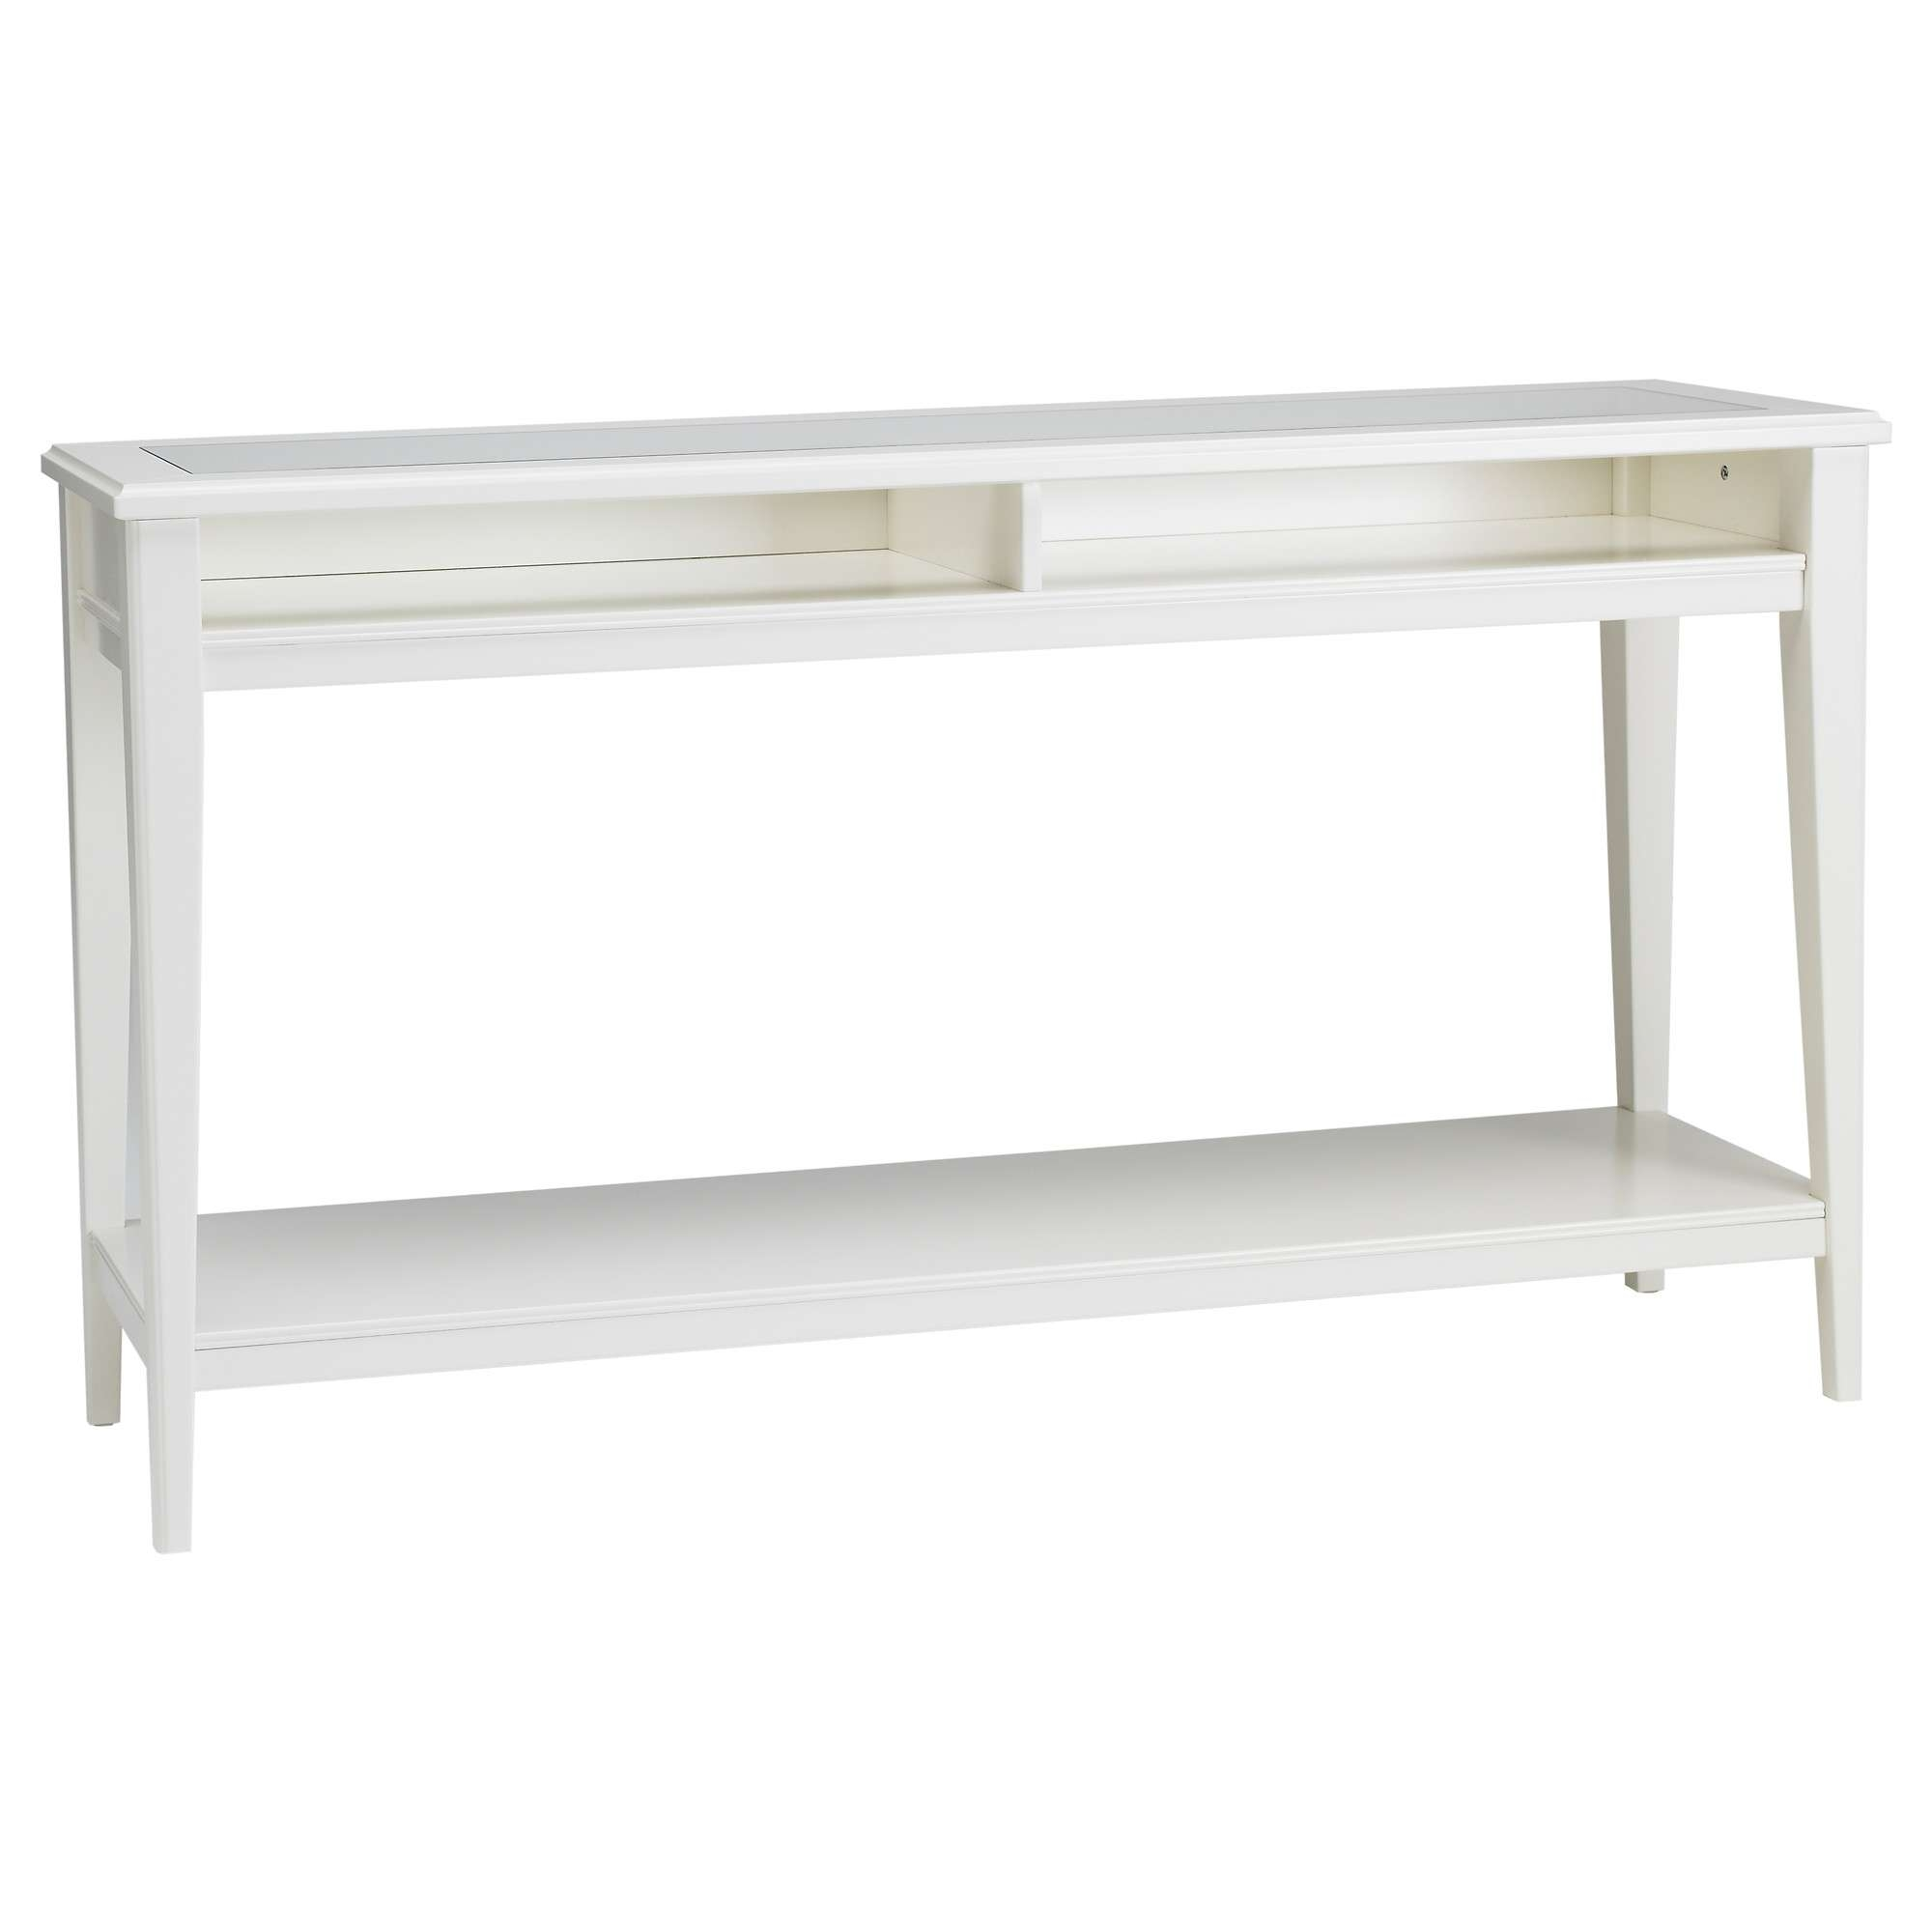 Console Tables, Sofa Tables & Sideboards – Ikea Pertaining To White Sideboards Tables (View 11 of 20)